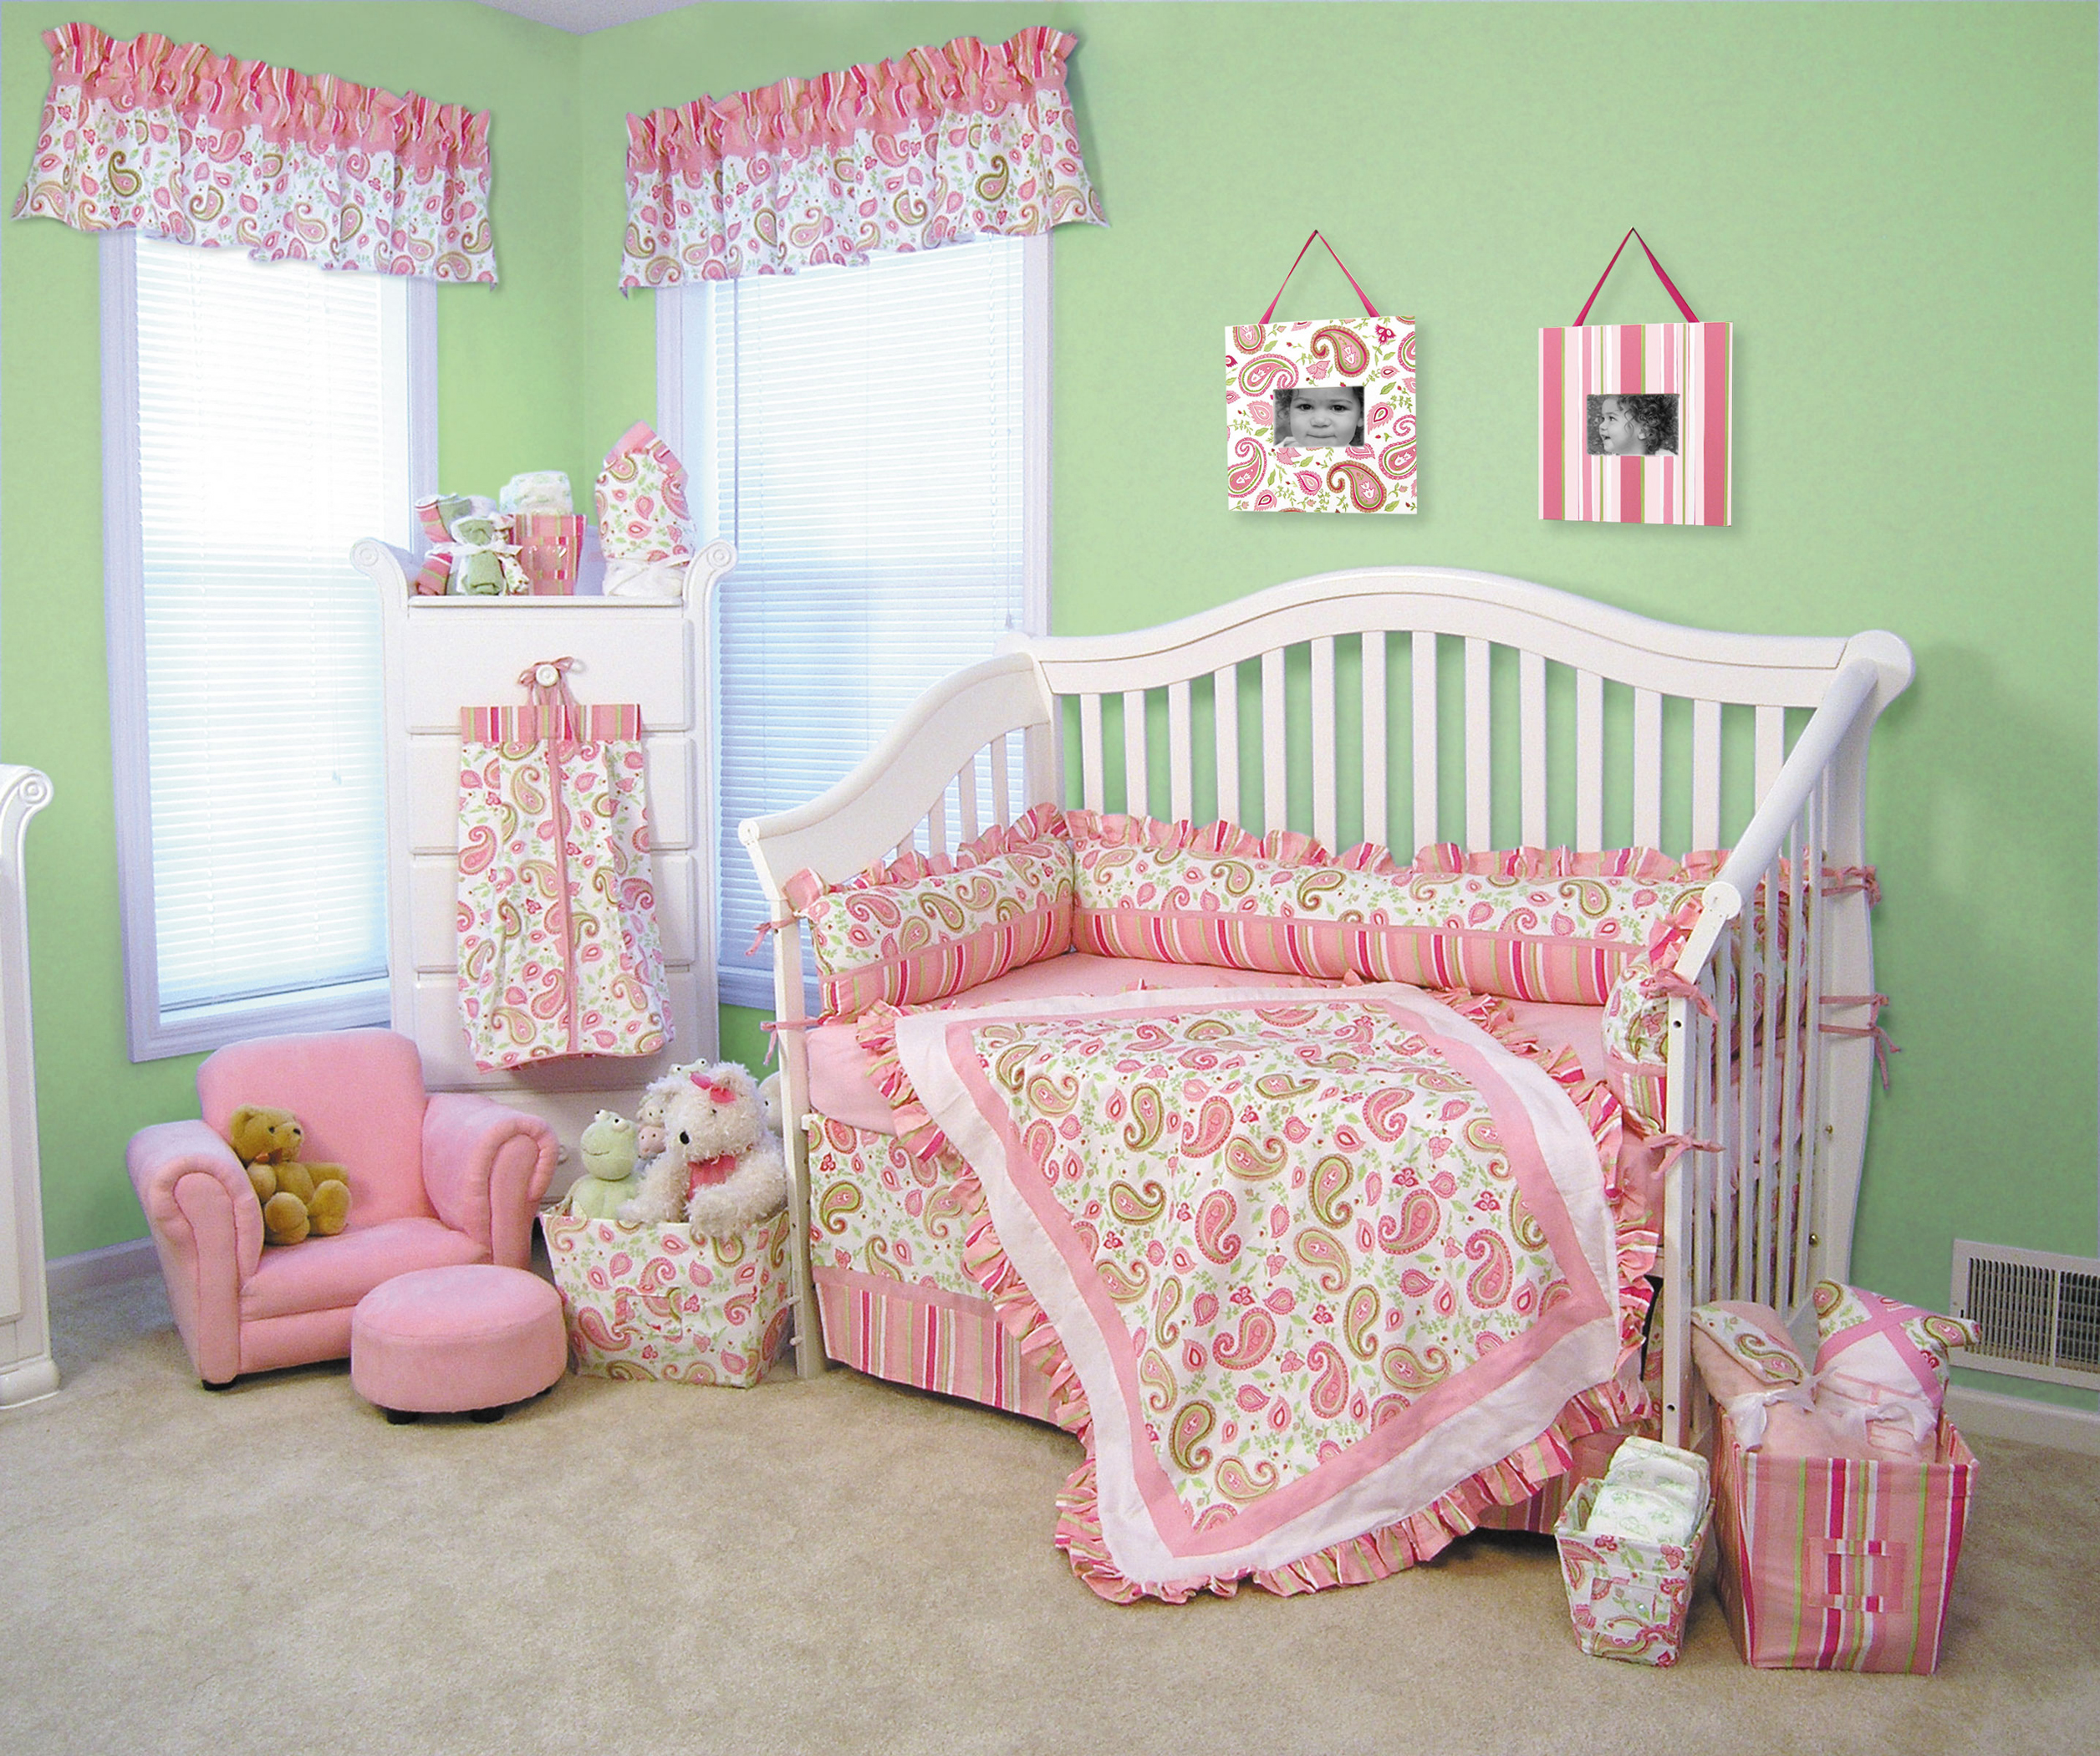 Interior Design Elegant Pink White Gray Baby Girl Room: Stunning Baby Girl Crib Bedding Designed In Magenta Color